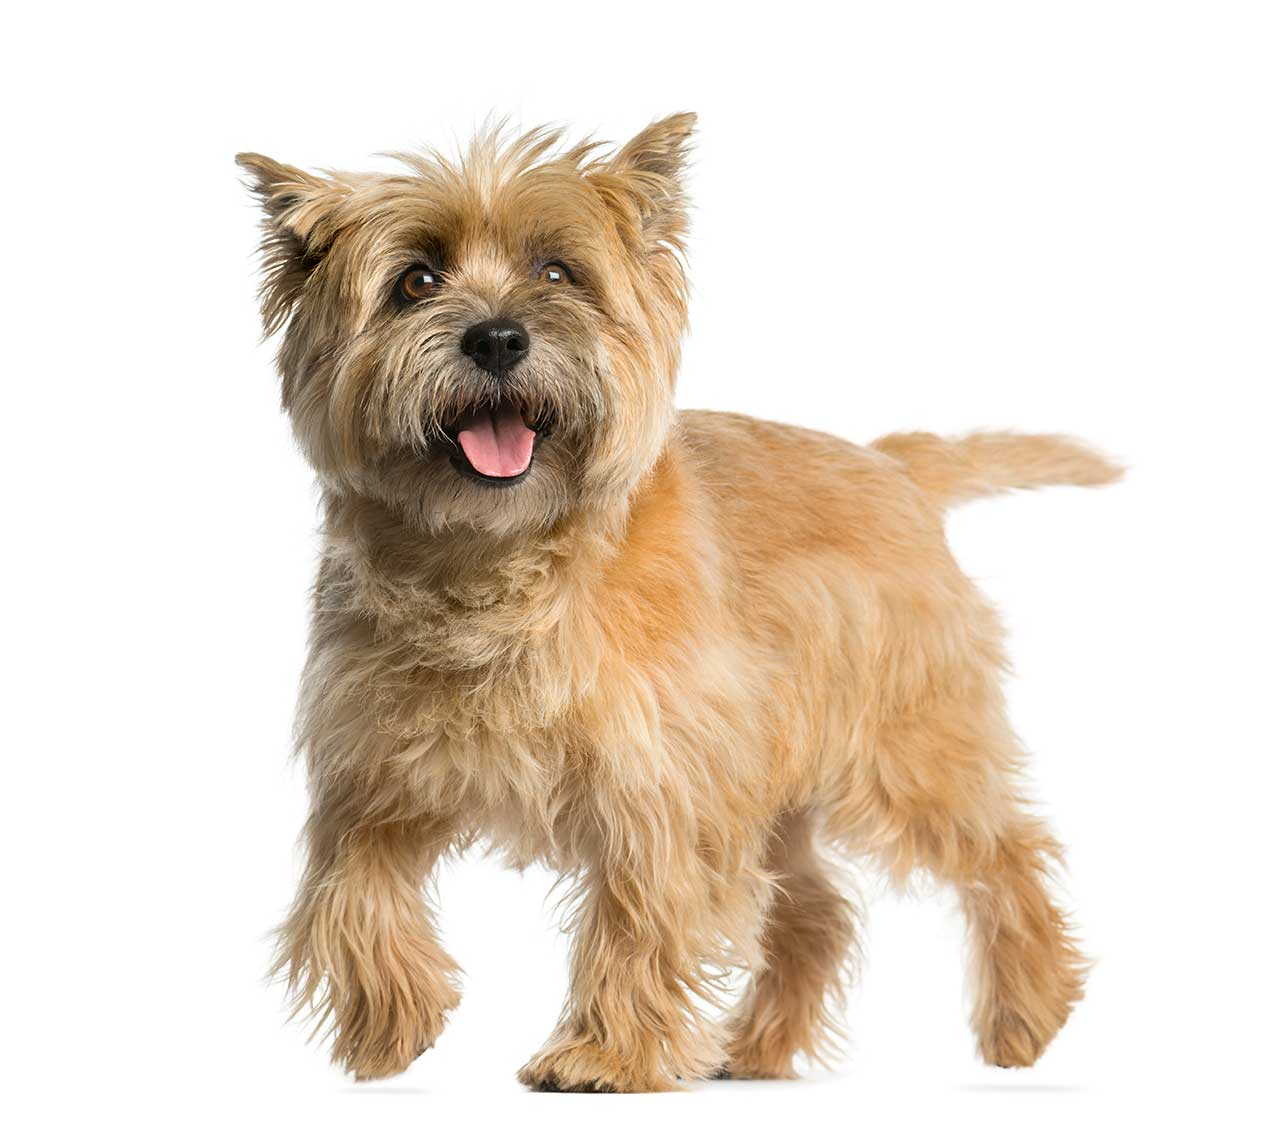 Cairn Terrier Dog Breed » Everything About Cairn Terriers